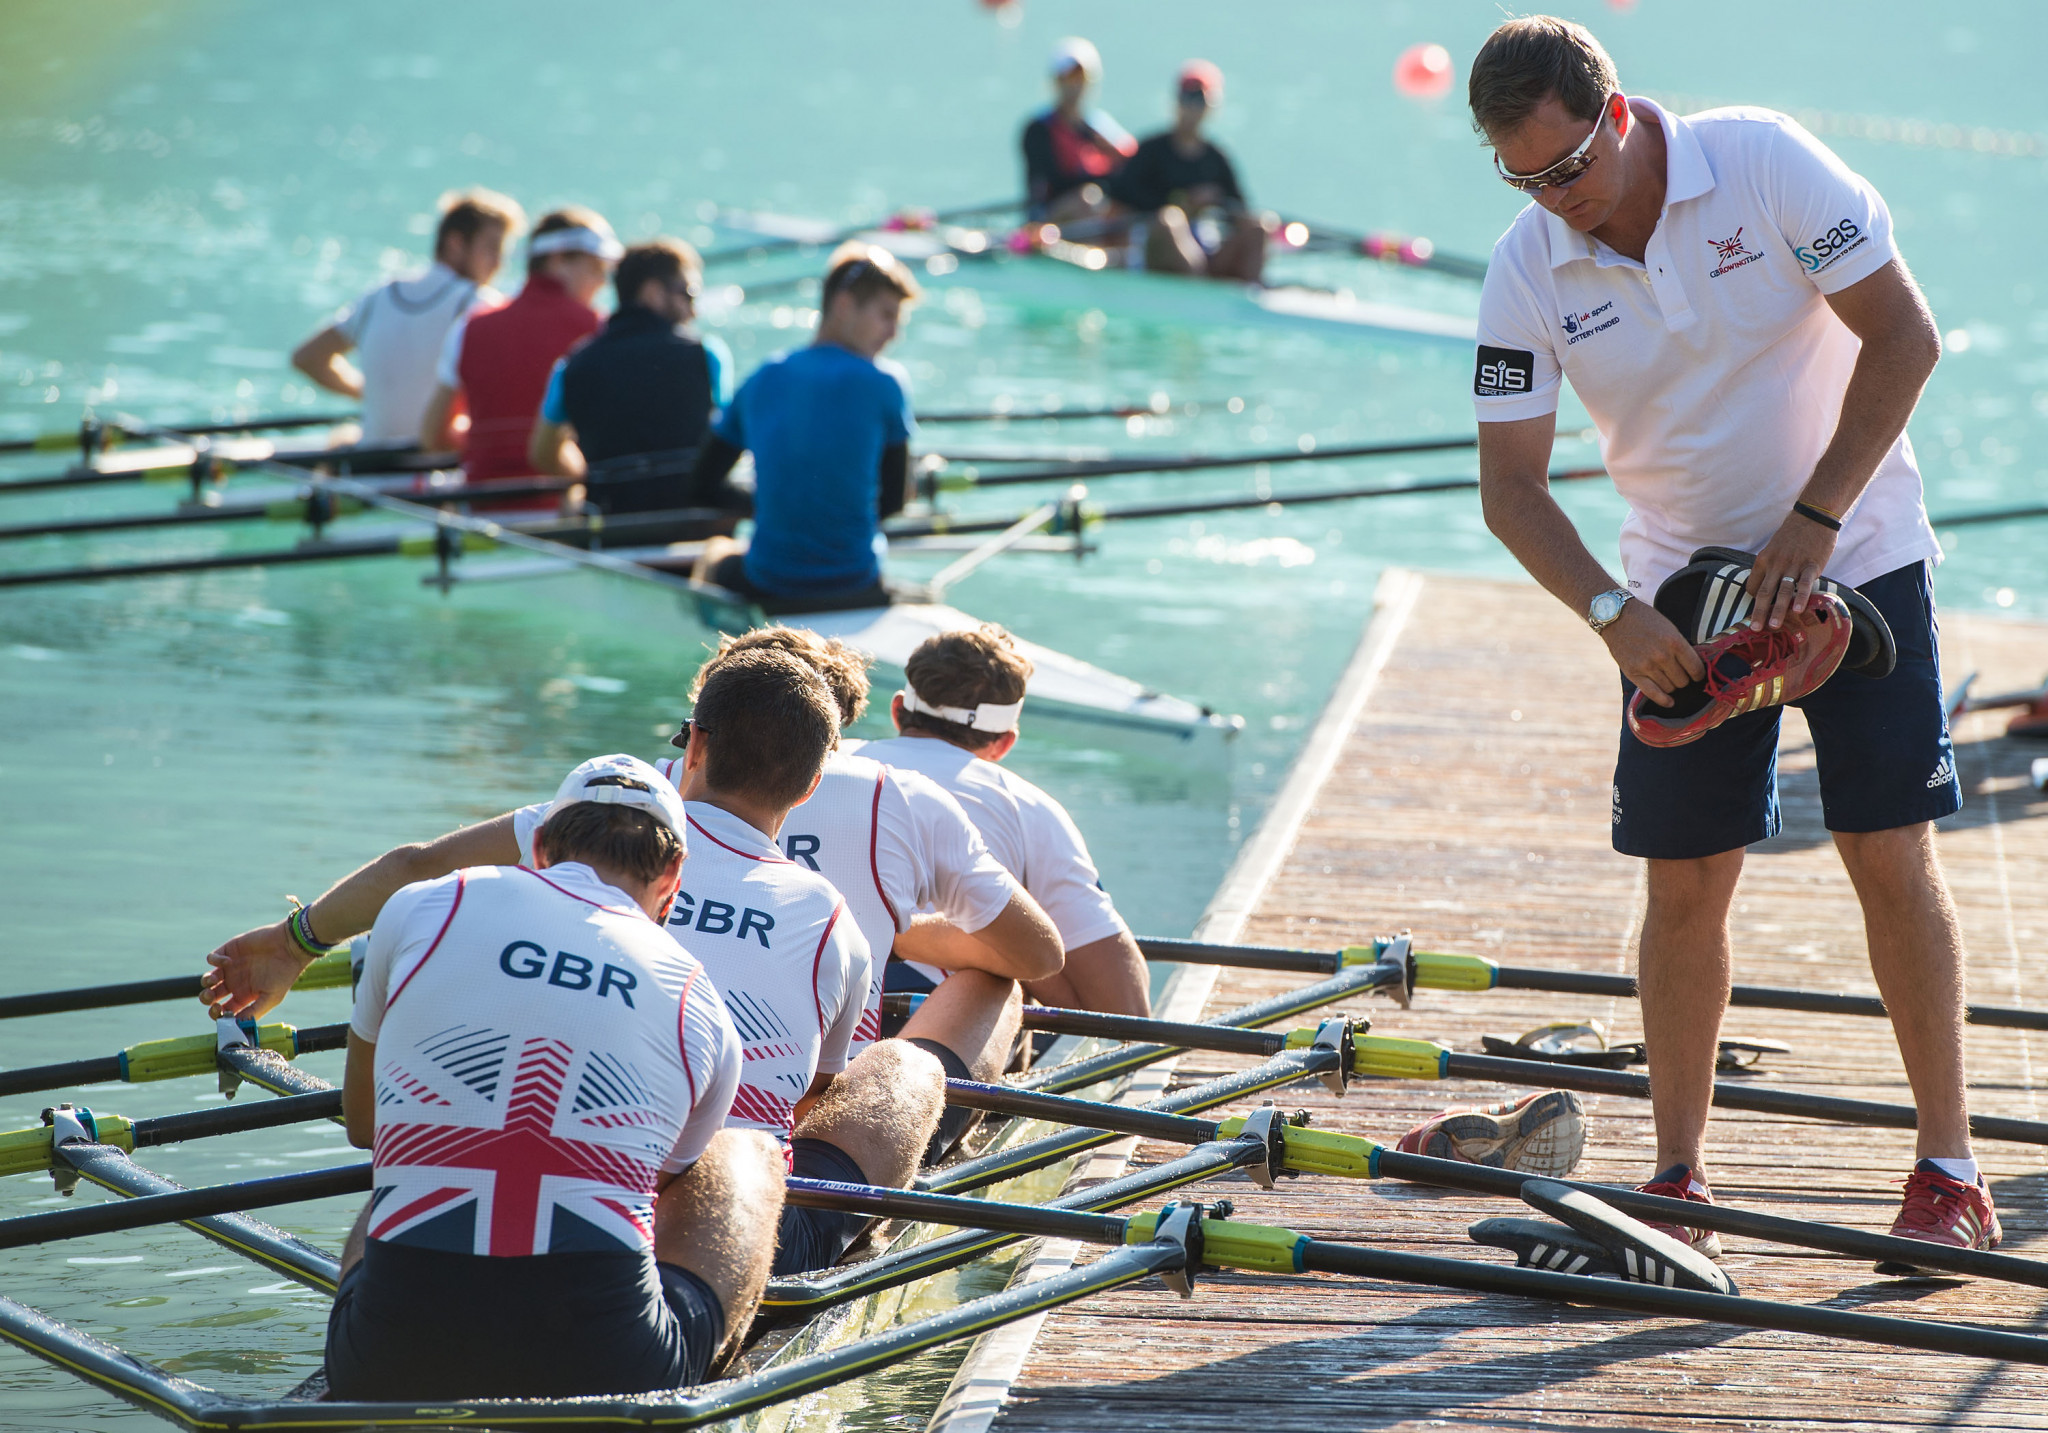 Paul Stannard will be responsible for leading men's sculling under British Rowing's new coaching structure ©Getty Images